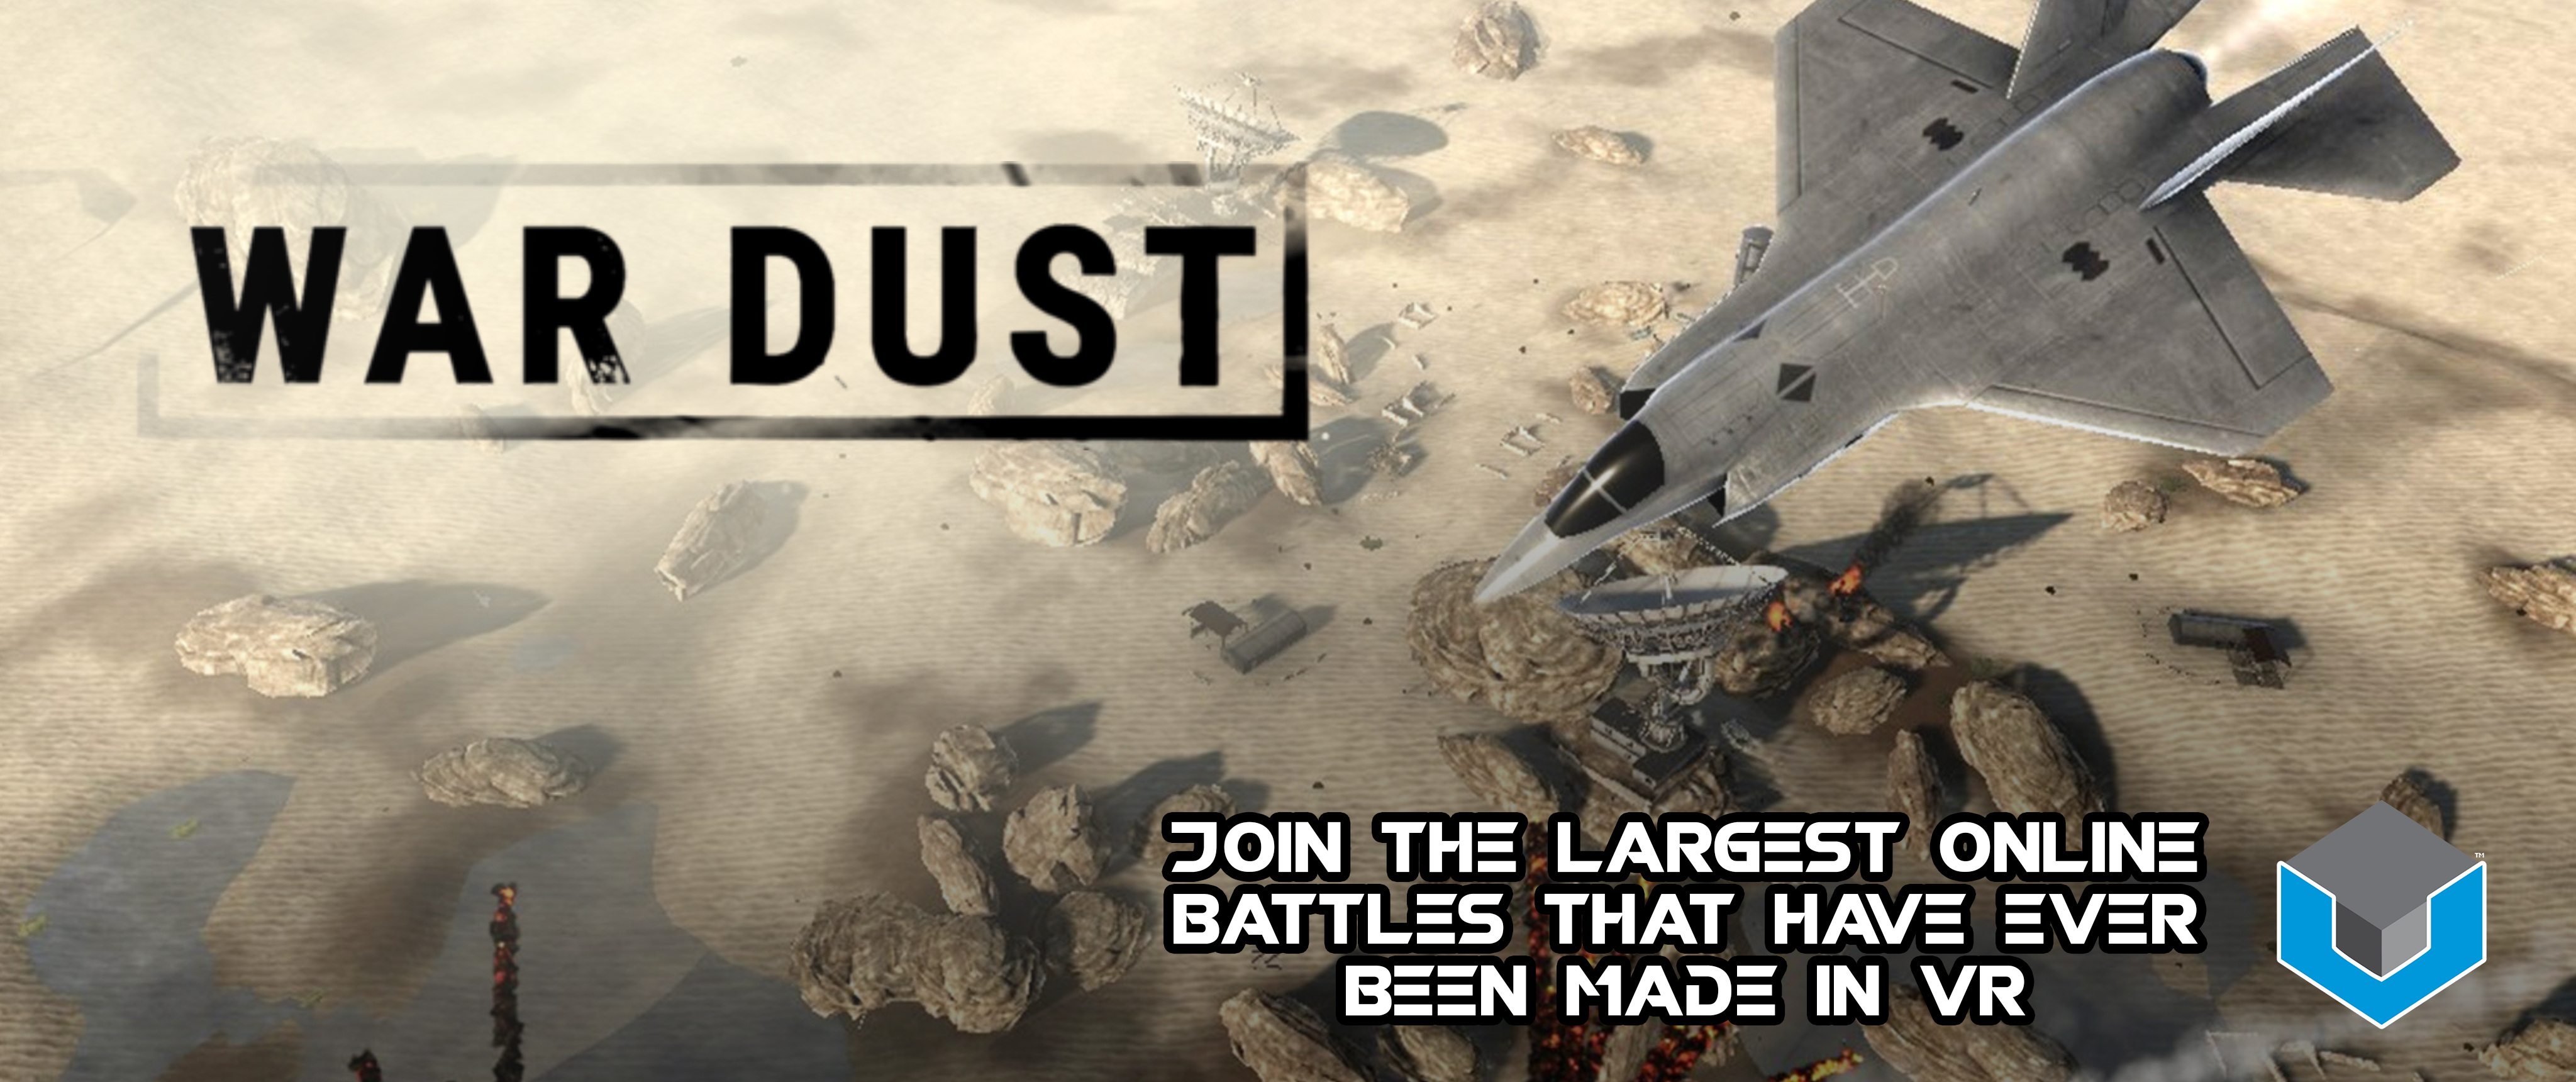 War Dust Slider